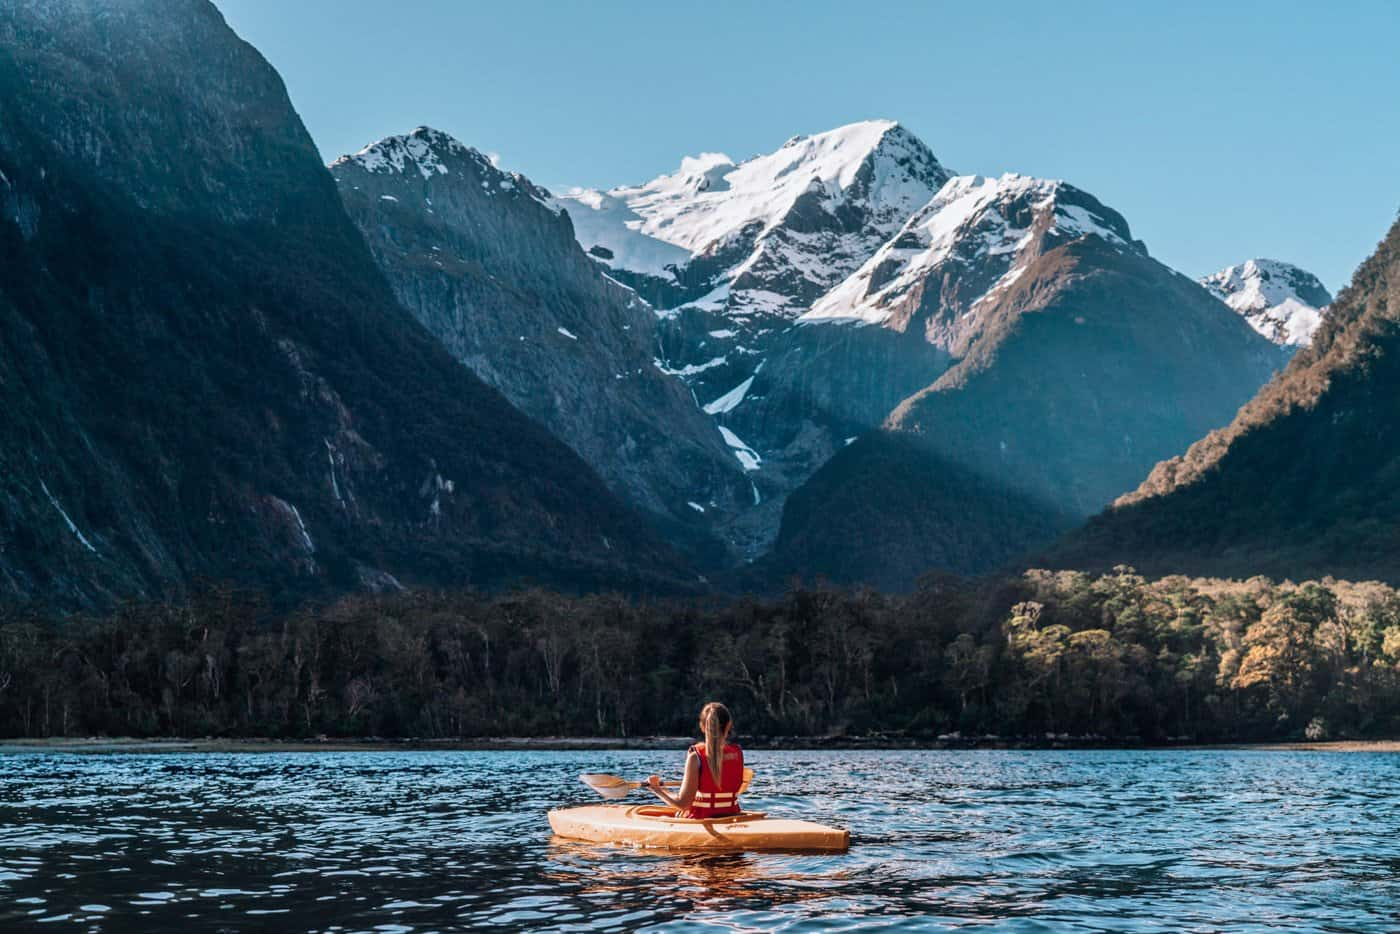 Sophie enjoys some breathtaking views on a kayaking adventure through Milford Sound.